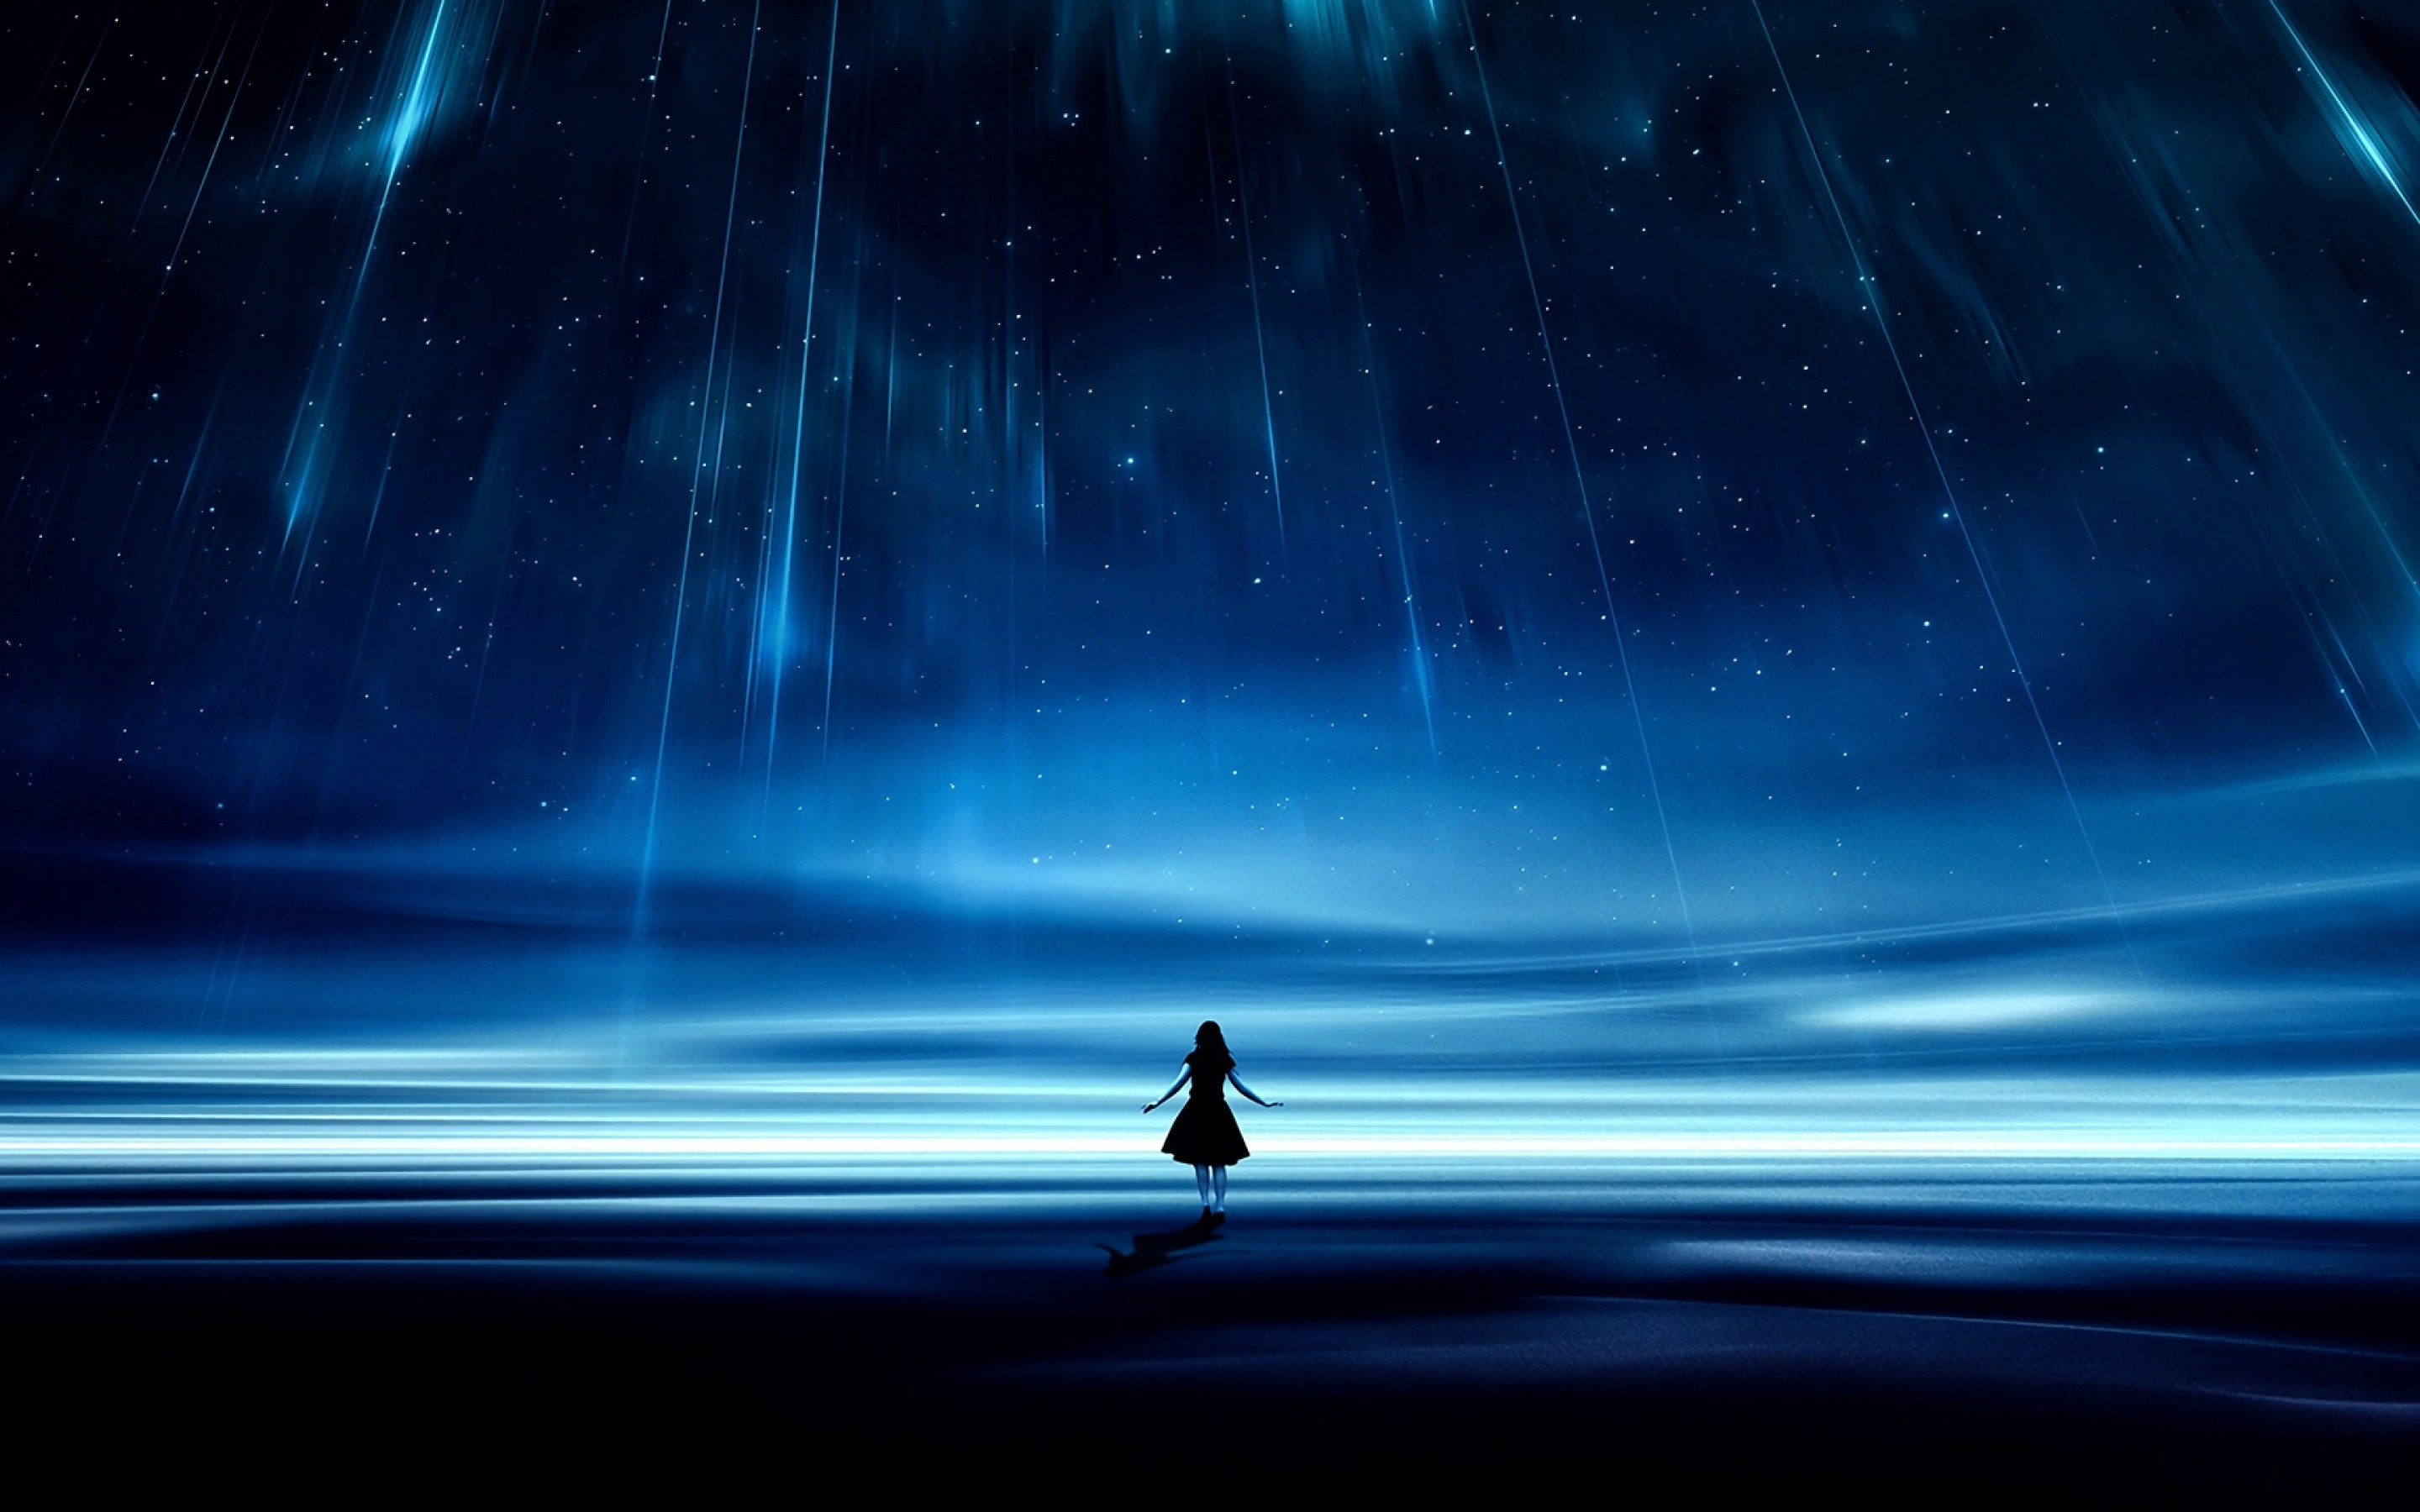 Girl silhouette under a starry sky HD Wallpaper